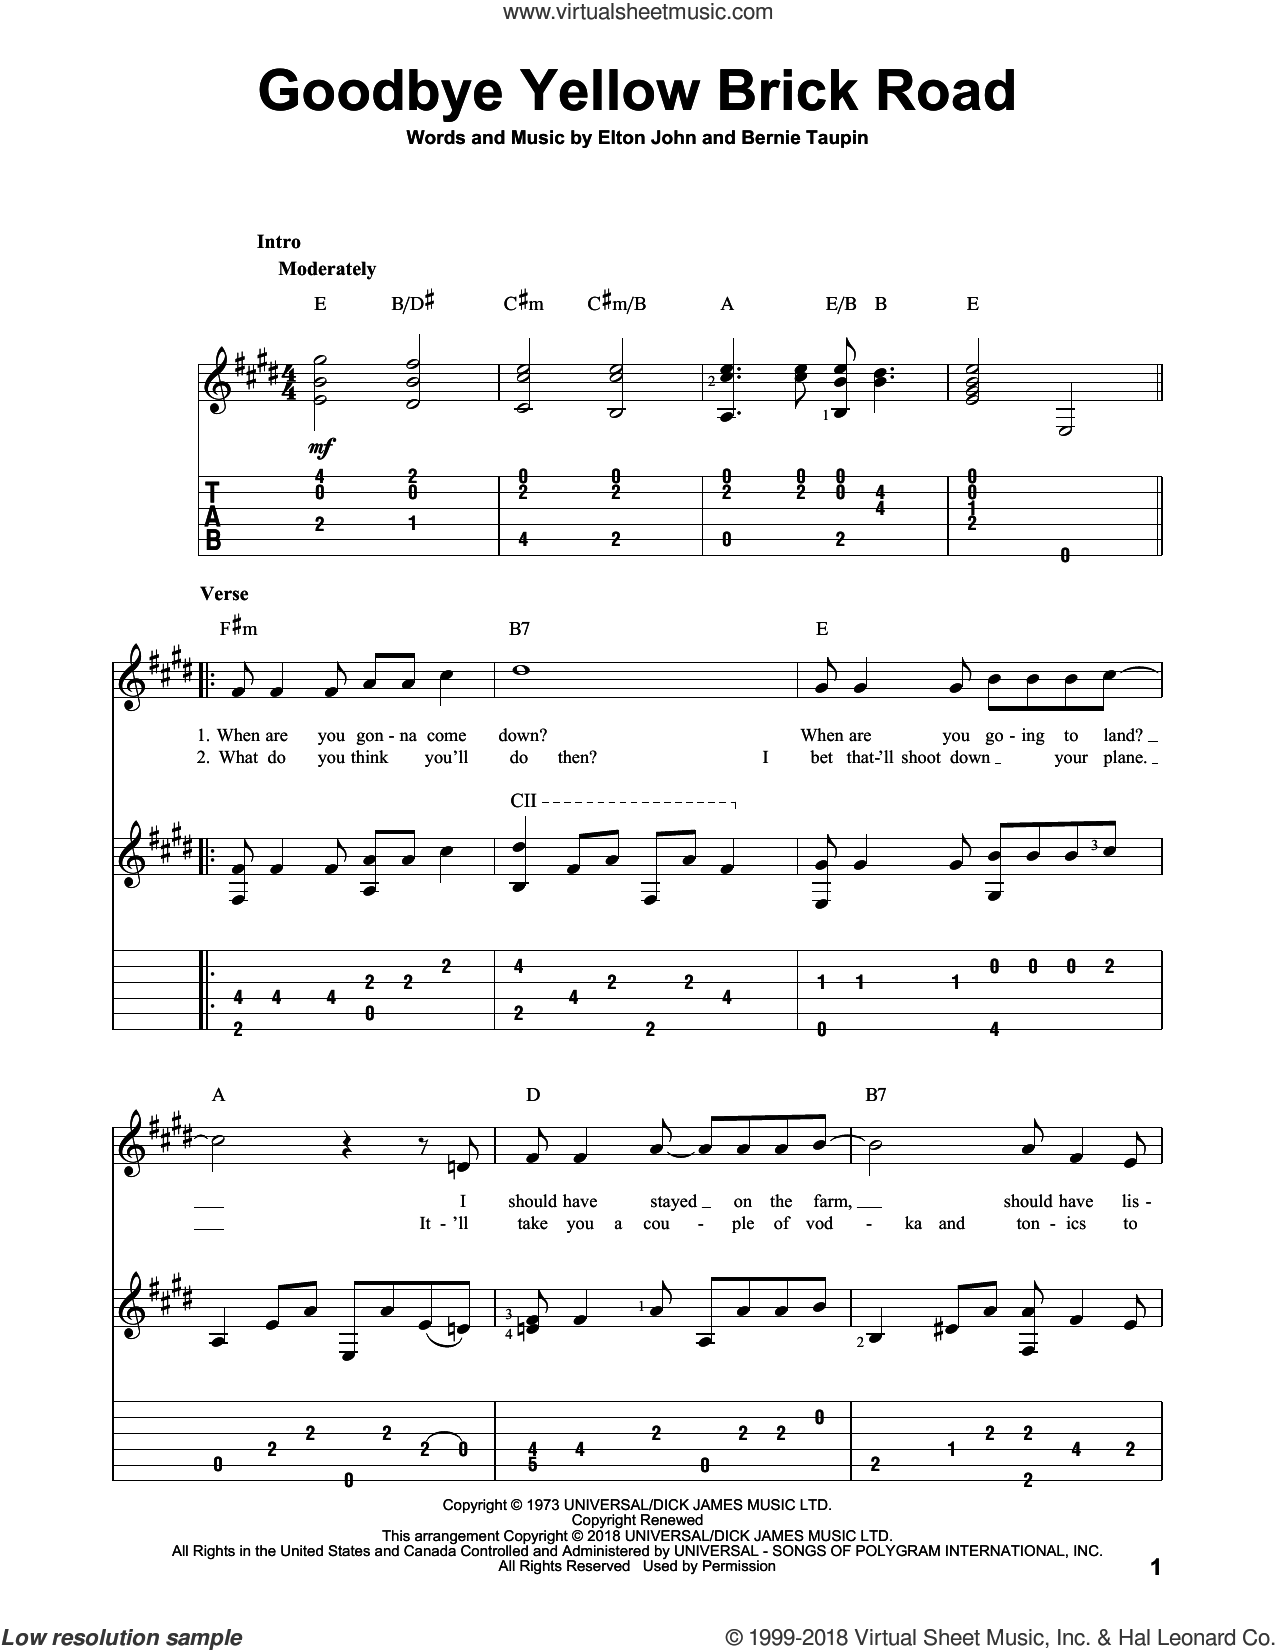 Goodbye Yellow Brick Road sheet music for guitar solo by Elton John and Bernie Taupin, intermediate skill level